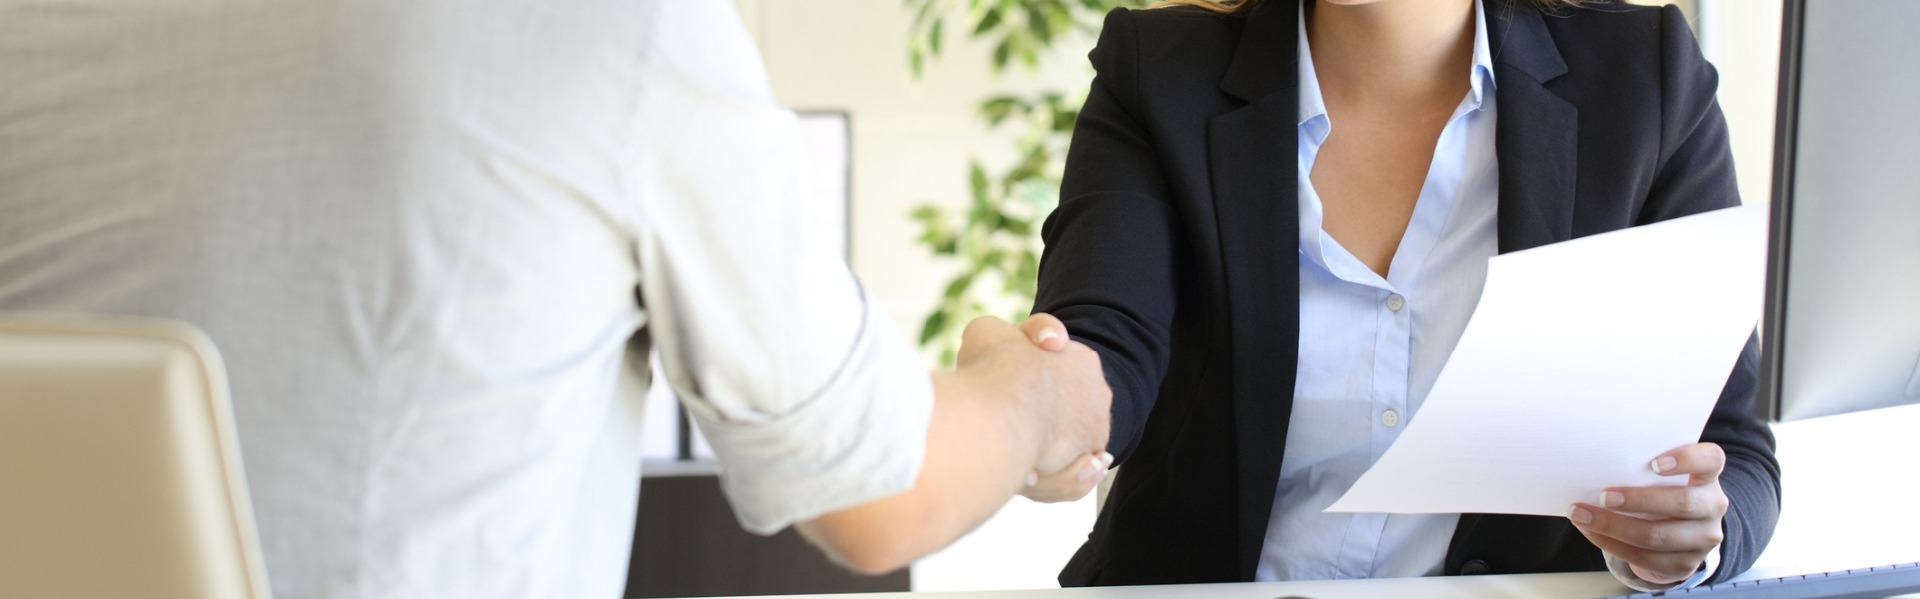 Handshake after customer buys house